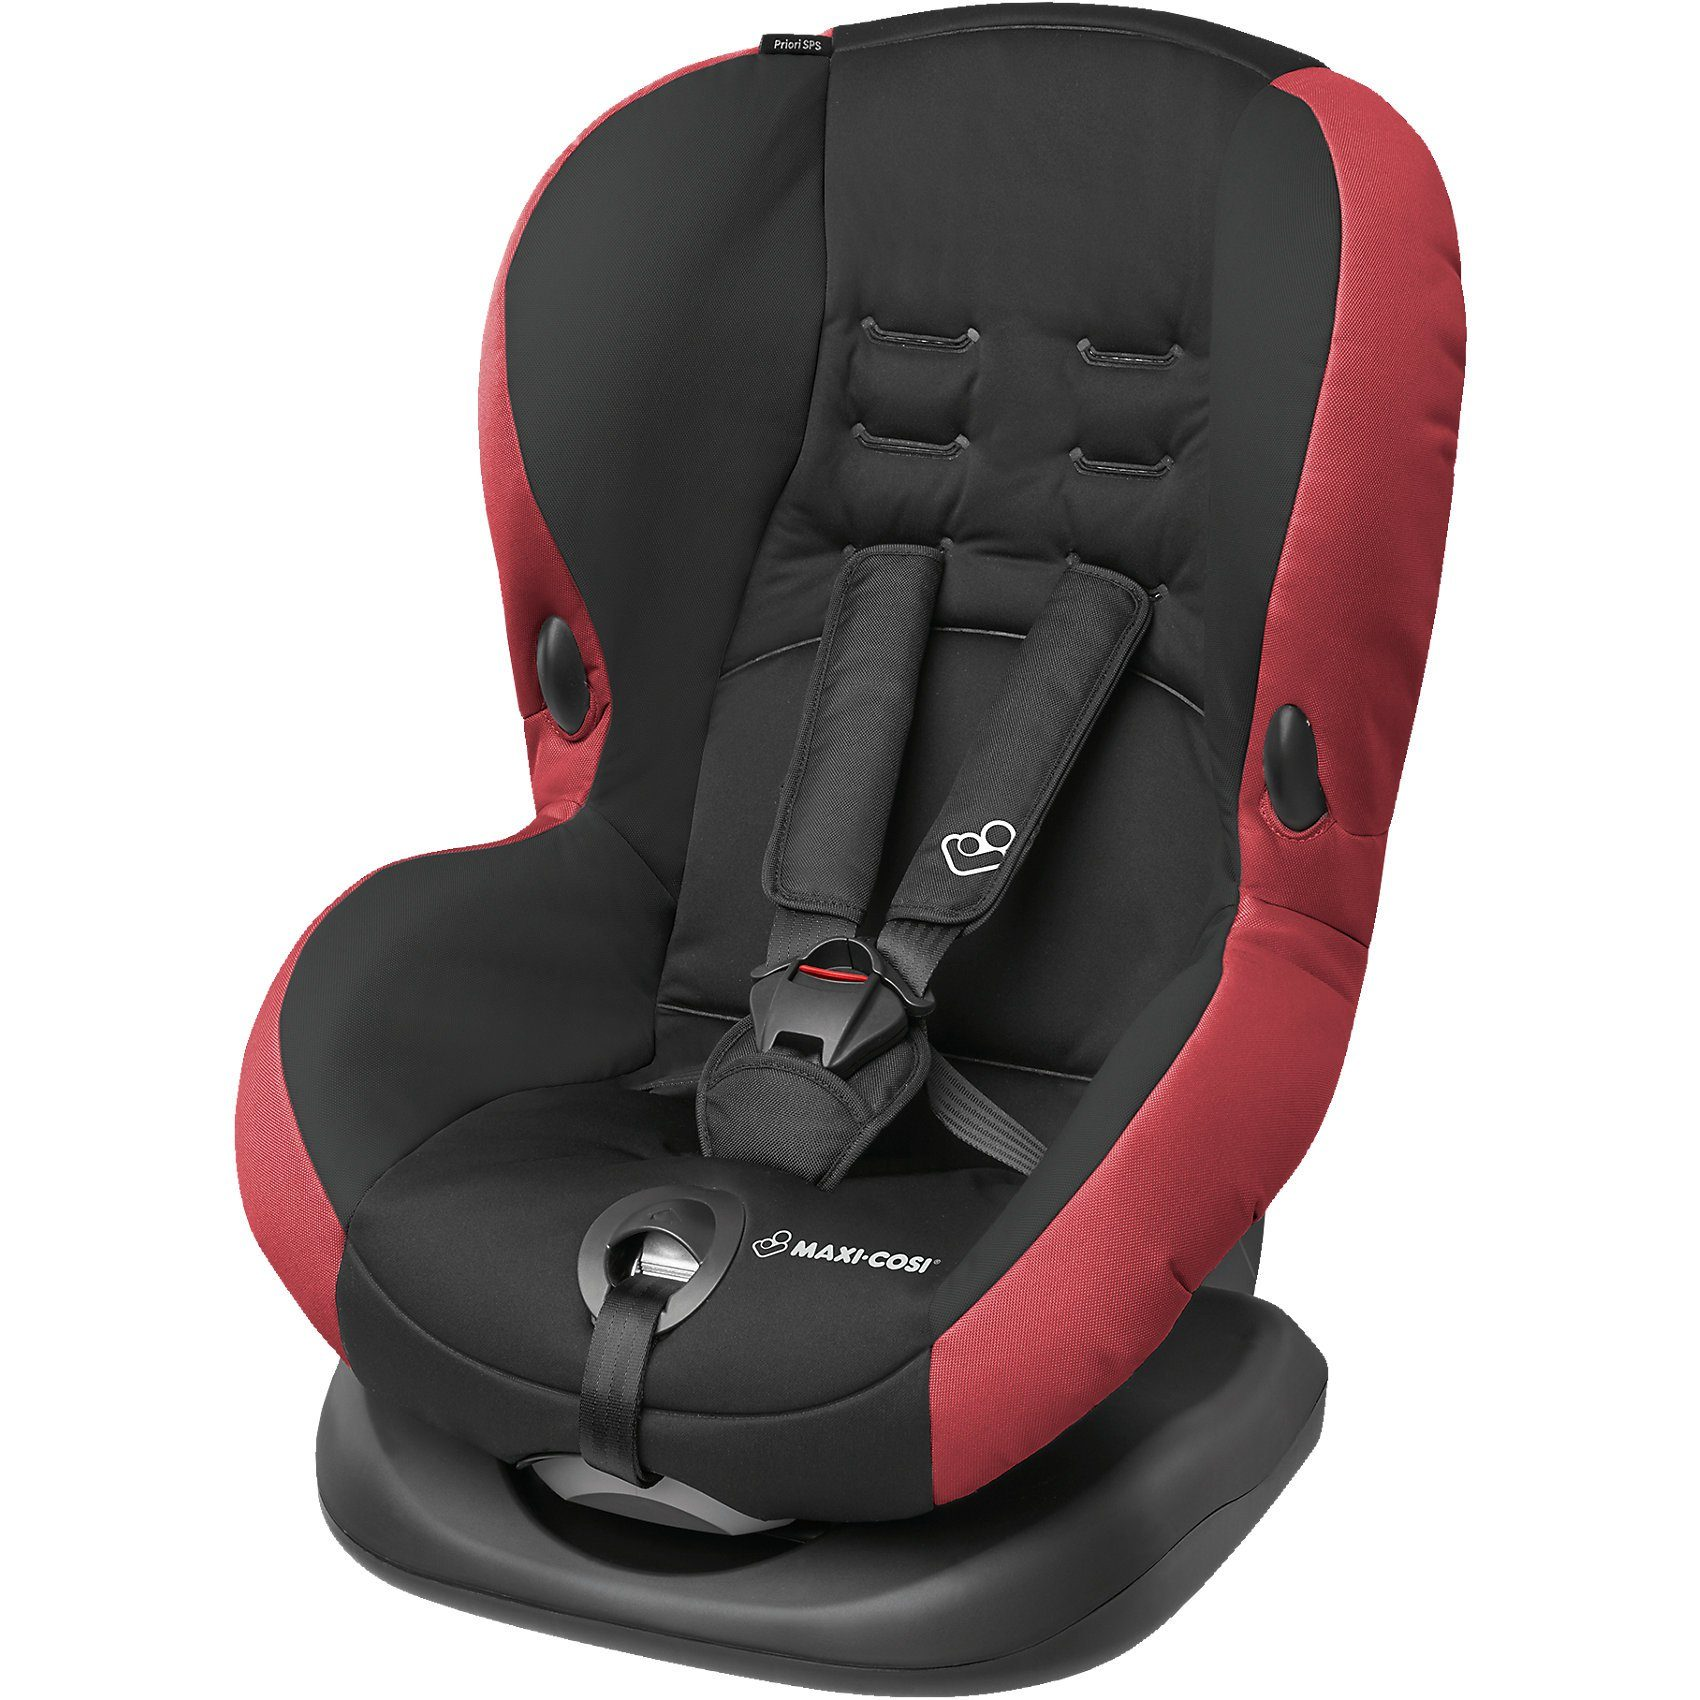 Maxi-Cosi Auto-Kindersitz Priori SPS+, Pepper Black, 2017